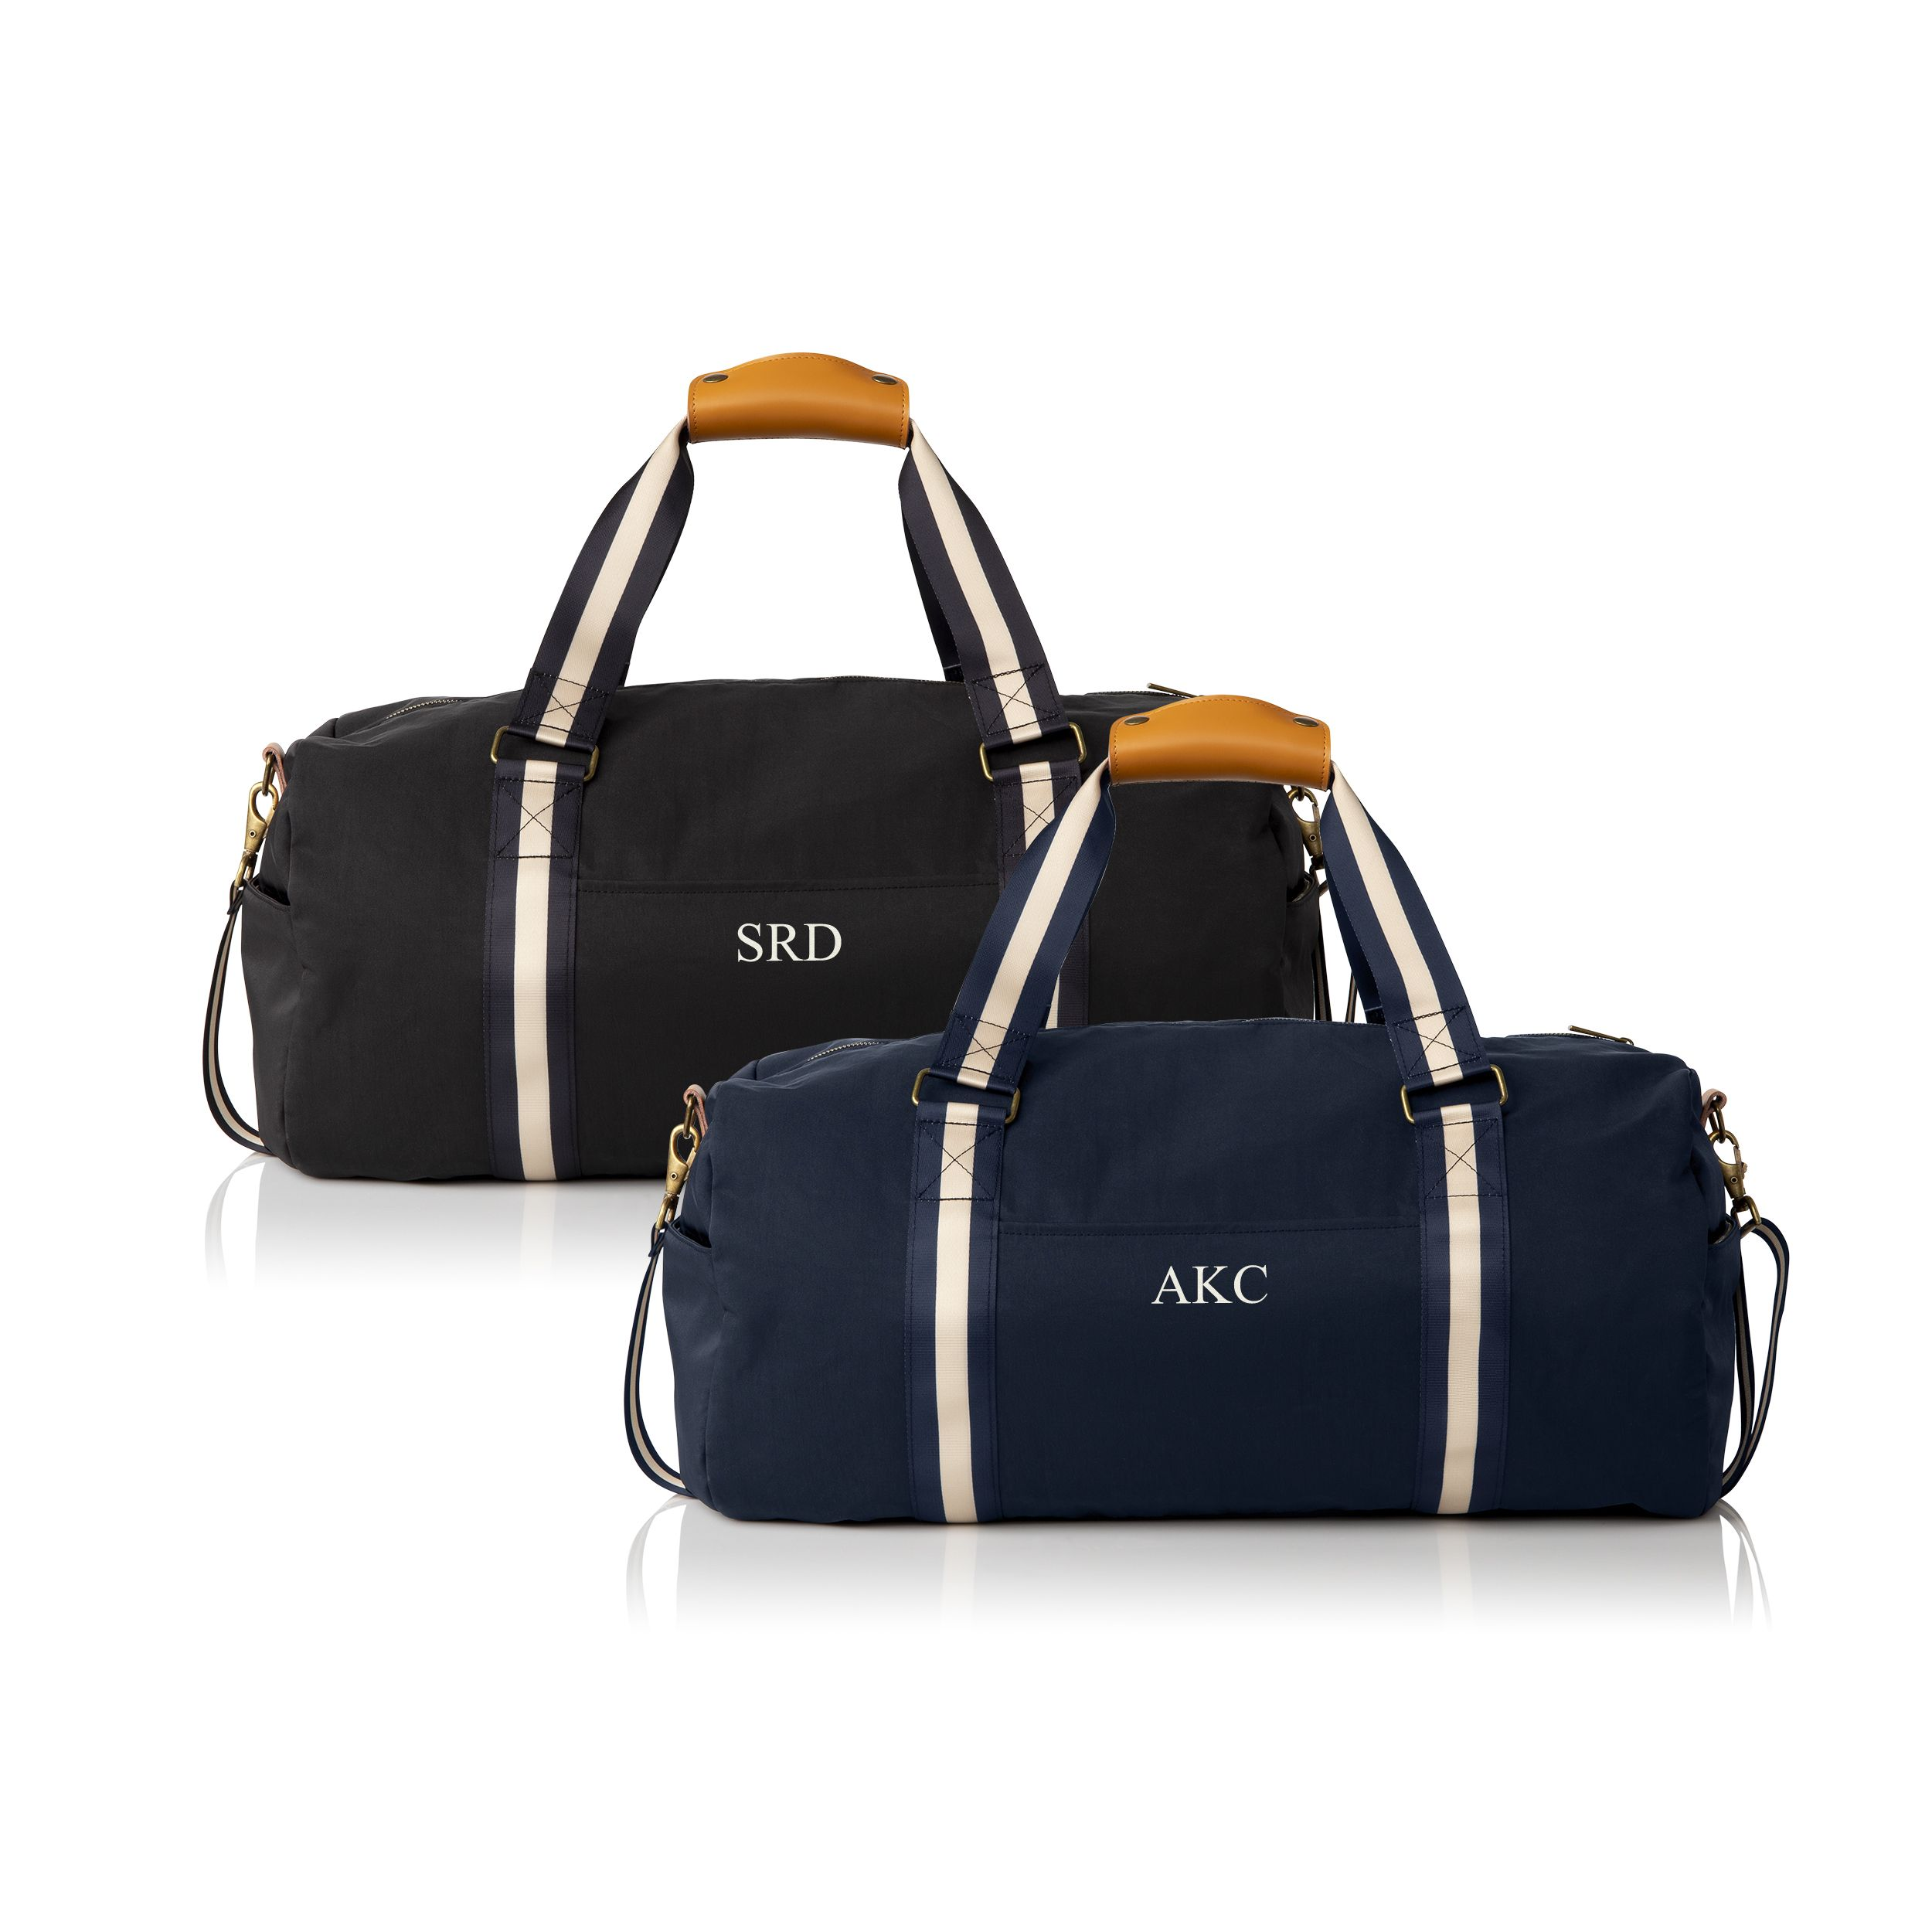 8 Groomsman Gifts 8 Duffle bags Free shipping Grooms gift monogrammed travel bags Personalized Goomsman gifts personalized mens bags